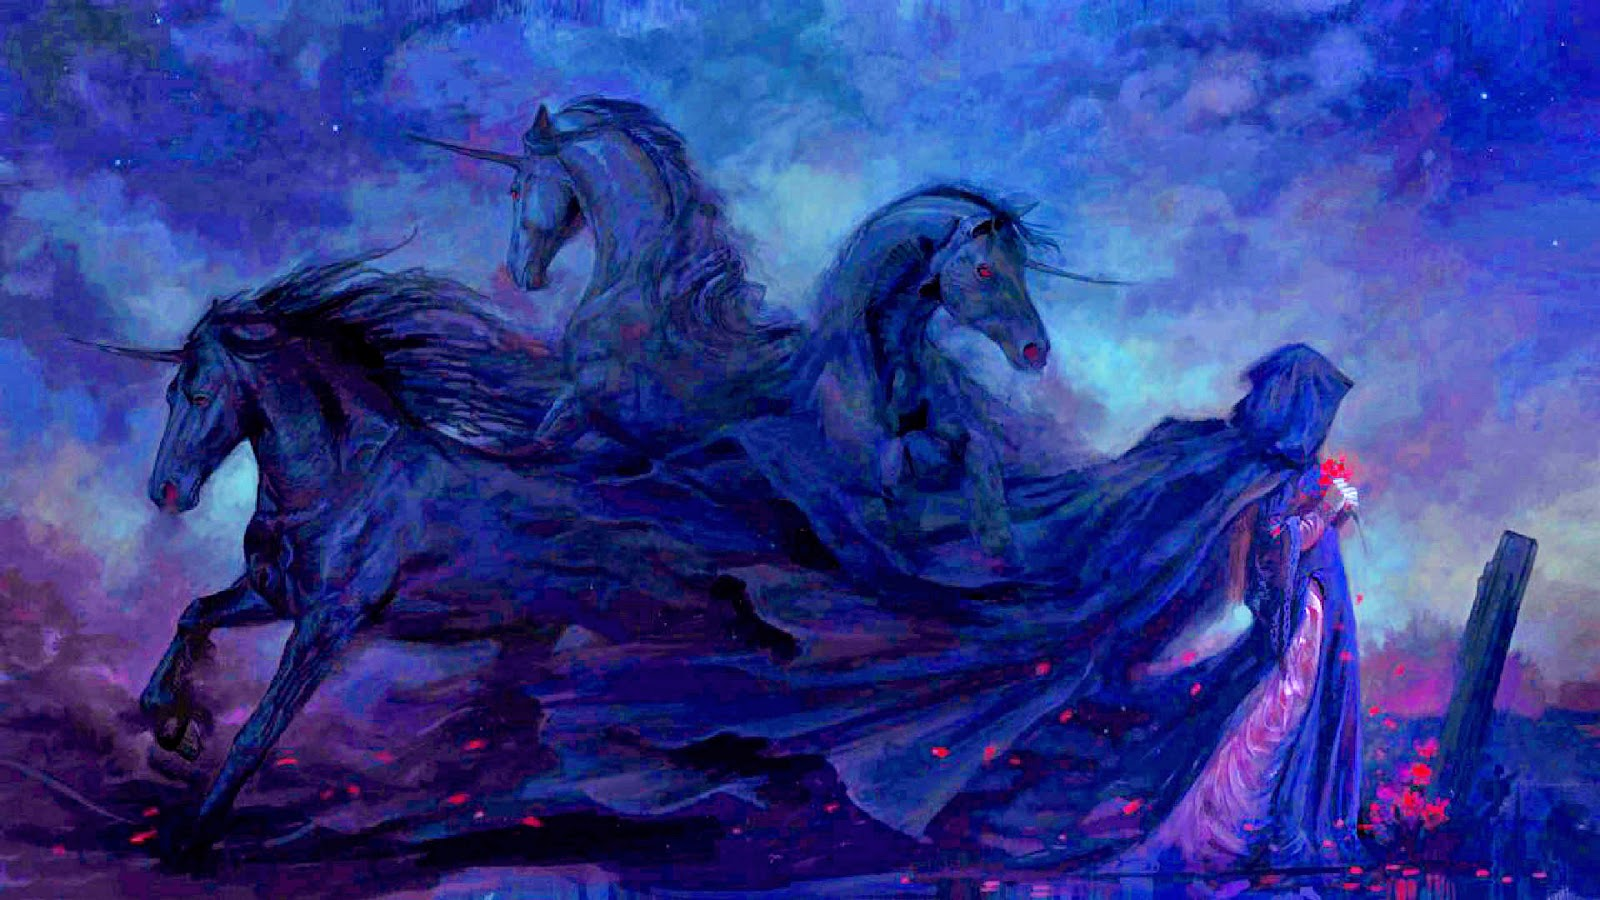 Unicorns-black-BG-theme-1920x1080-HD-Wallpaper.jpg